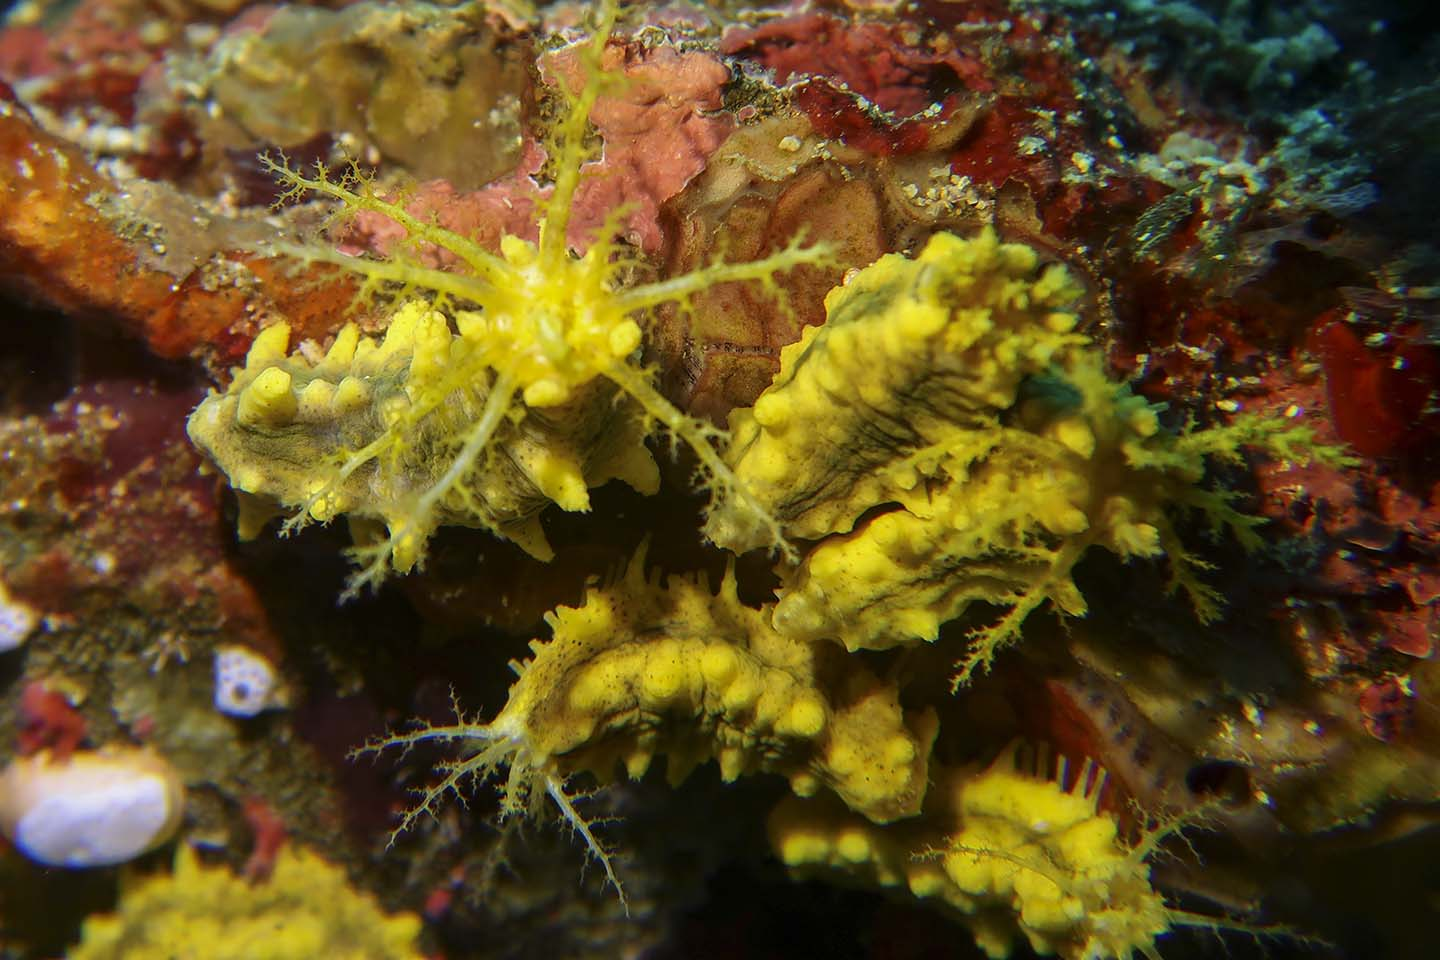 Looks like a nudibranch but its actually a yellow sea cucumber (Colochirus robustus)